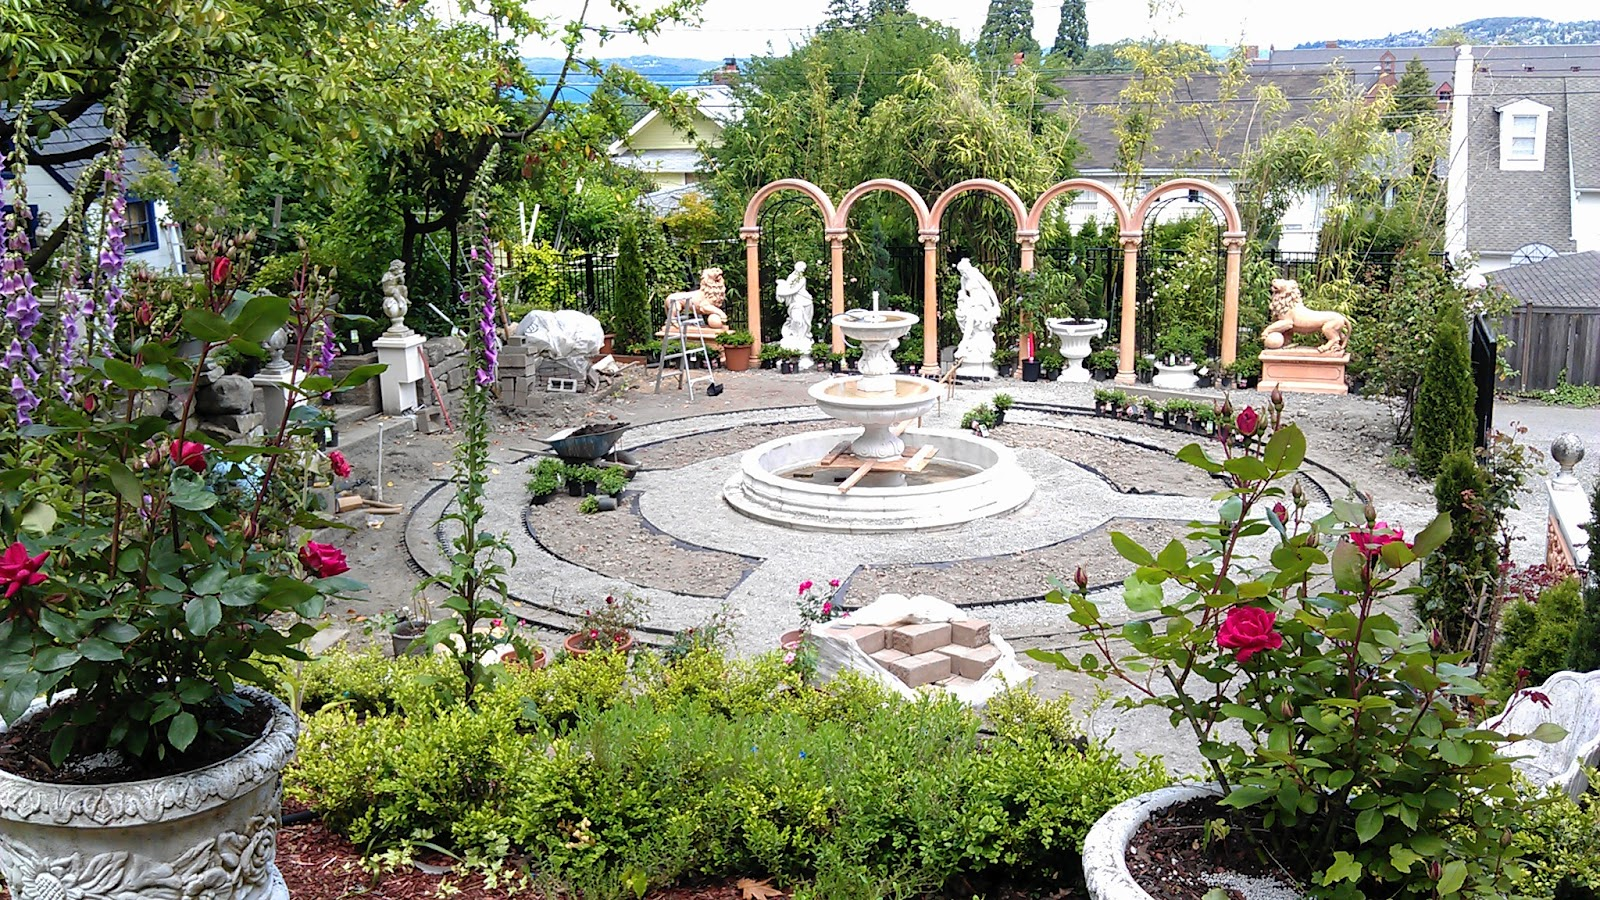 Image gallery italiangarden for Italian garden design